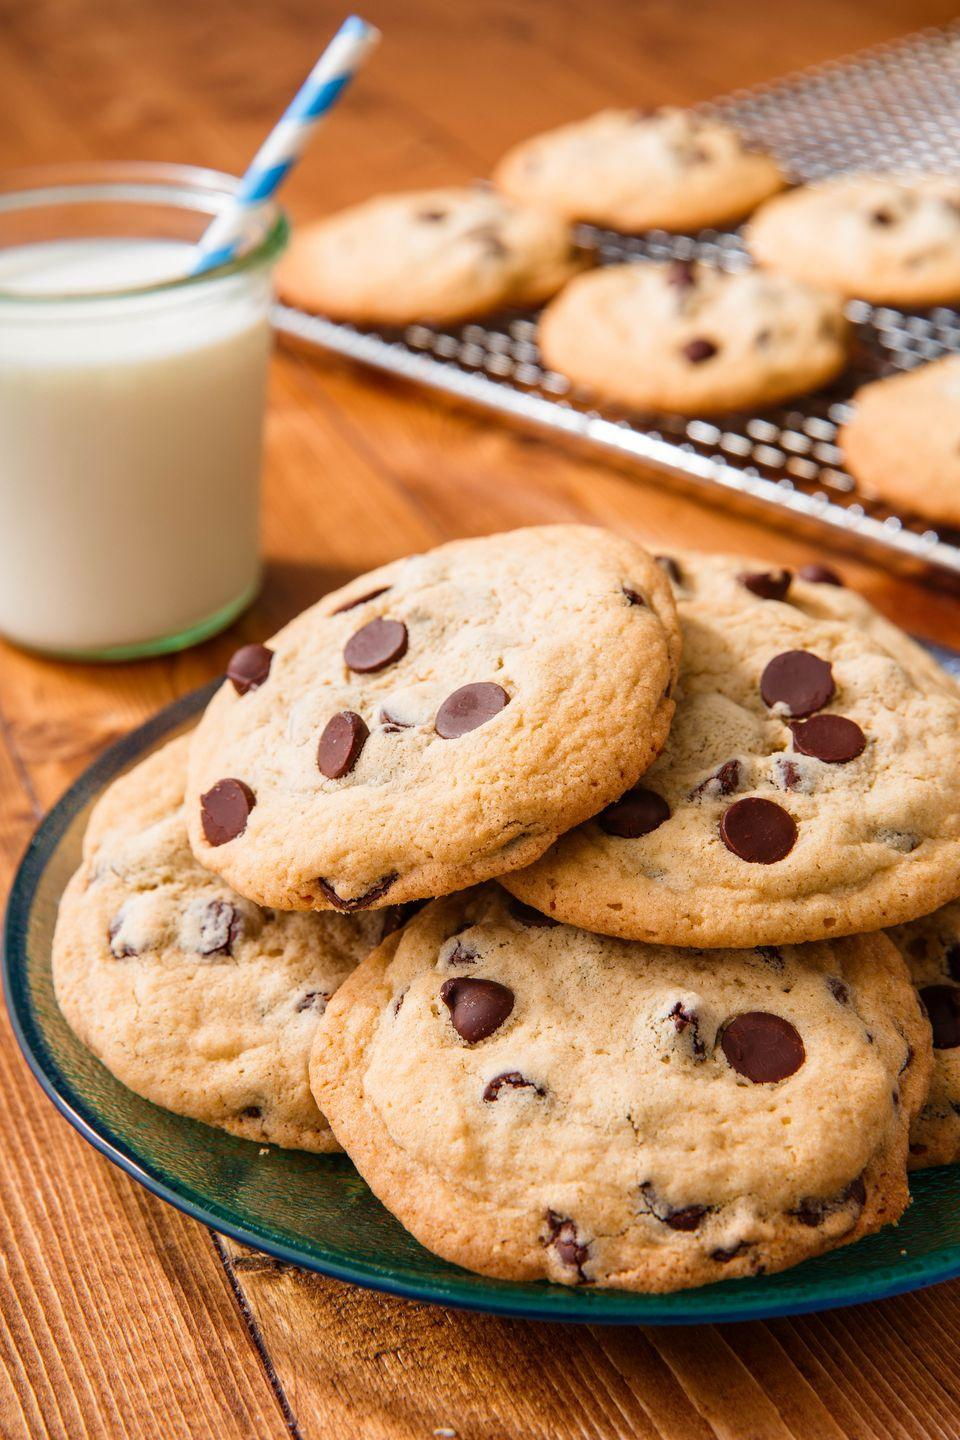 """<p>Look no further! We've got you covered for the perfect chocolate chip cookie recipe.</p><p>Get the recipe from <a href=""""https://www.delish.com/cooking/recipe-ideas/recipes/a50605/chocolate-chip-cookies-recipe/"""" rel=""""nofollow noopener"""" target=""""_blank"""" data-ylk=""""slk:Delish"""" class=""""link rapid-noclick-resp"""">Delish</a>.</p>"""